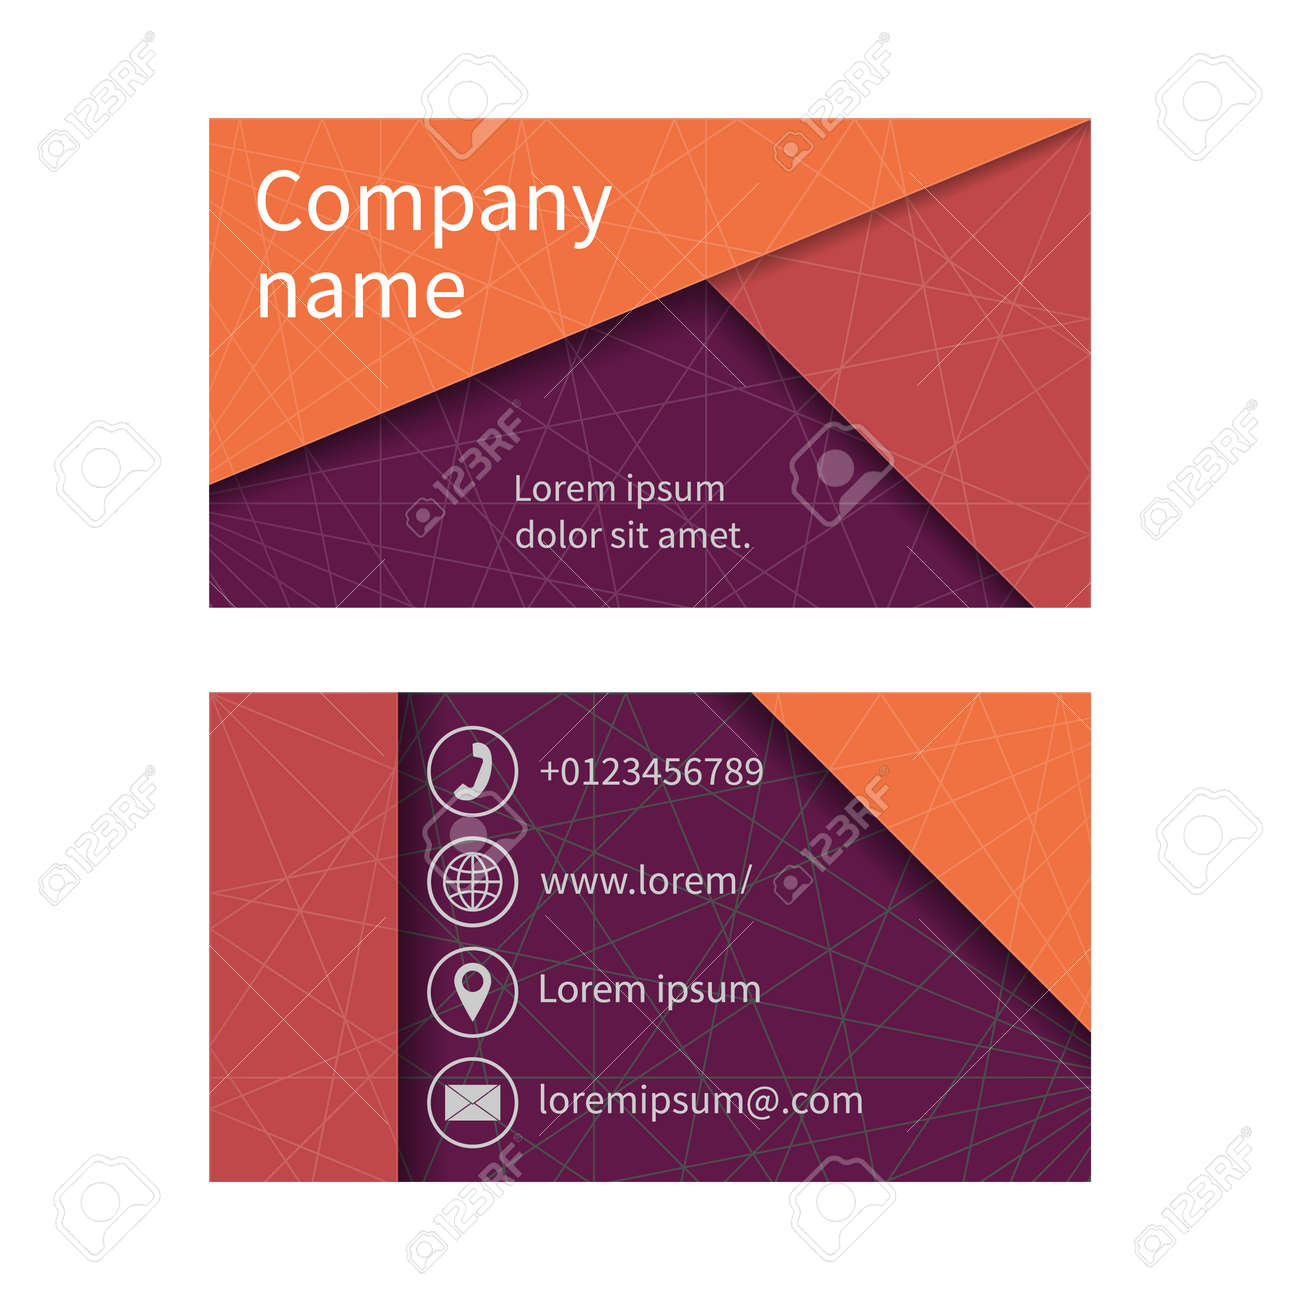 Business card with abstract background of lines business cards business card with abstract background of lines business cards set space for company name colourmoves